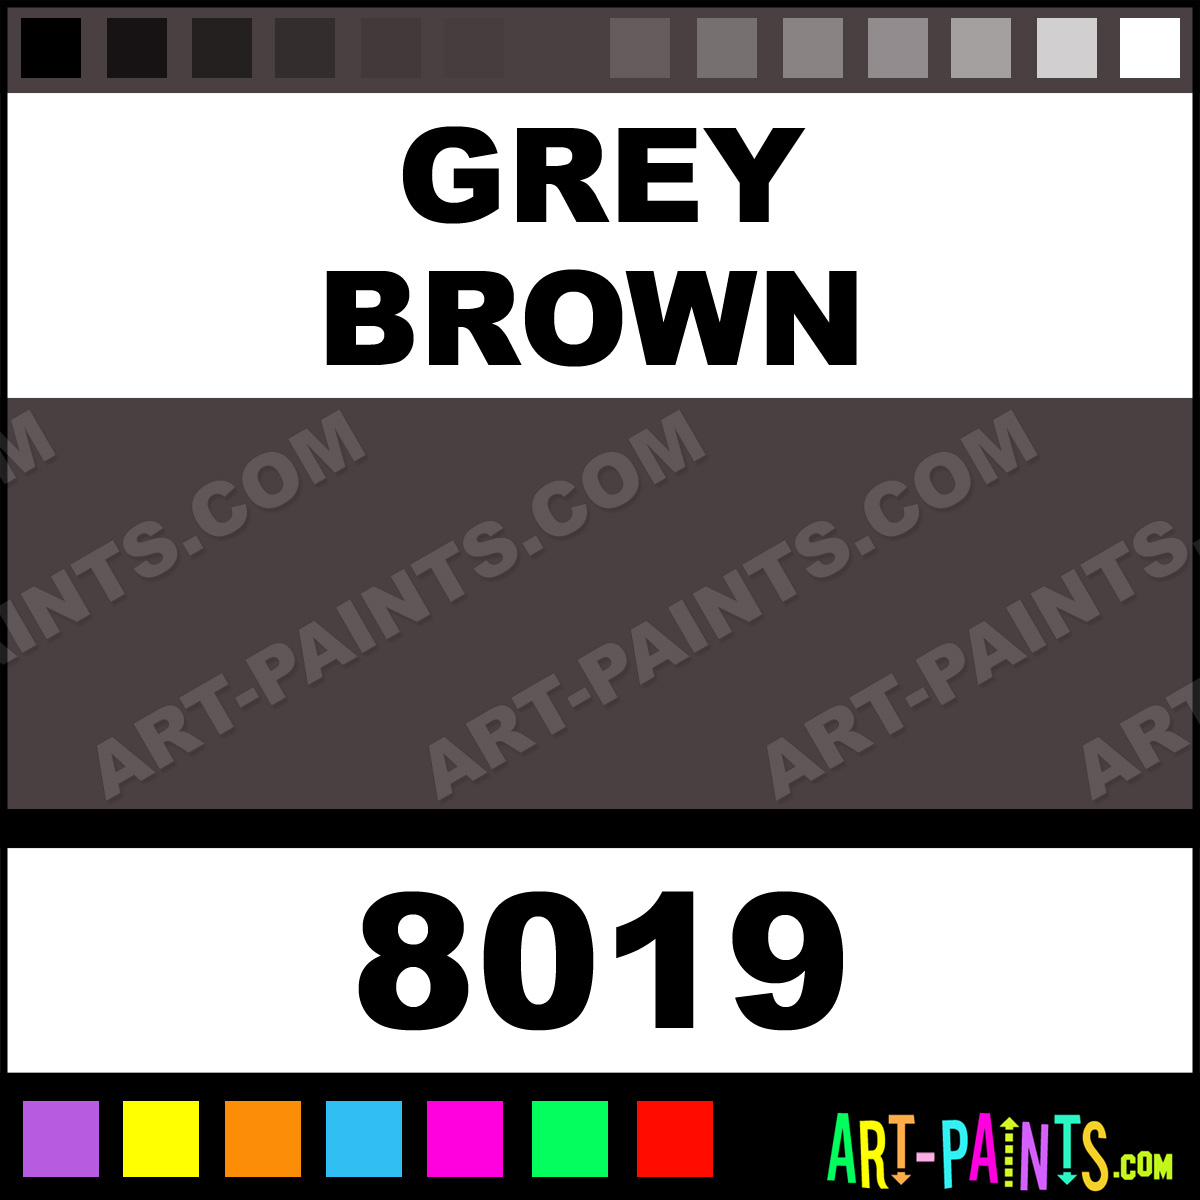 Grey Brown Glossy Acrylic Airbrush Spray Paints 8019 Grey Brown Paint Gr